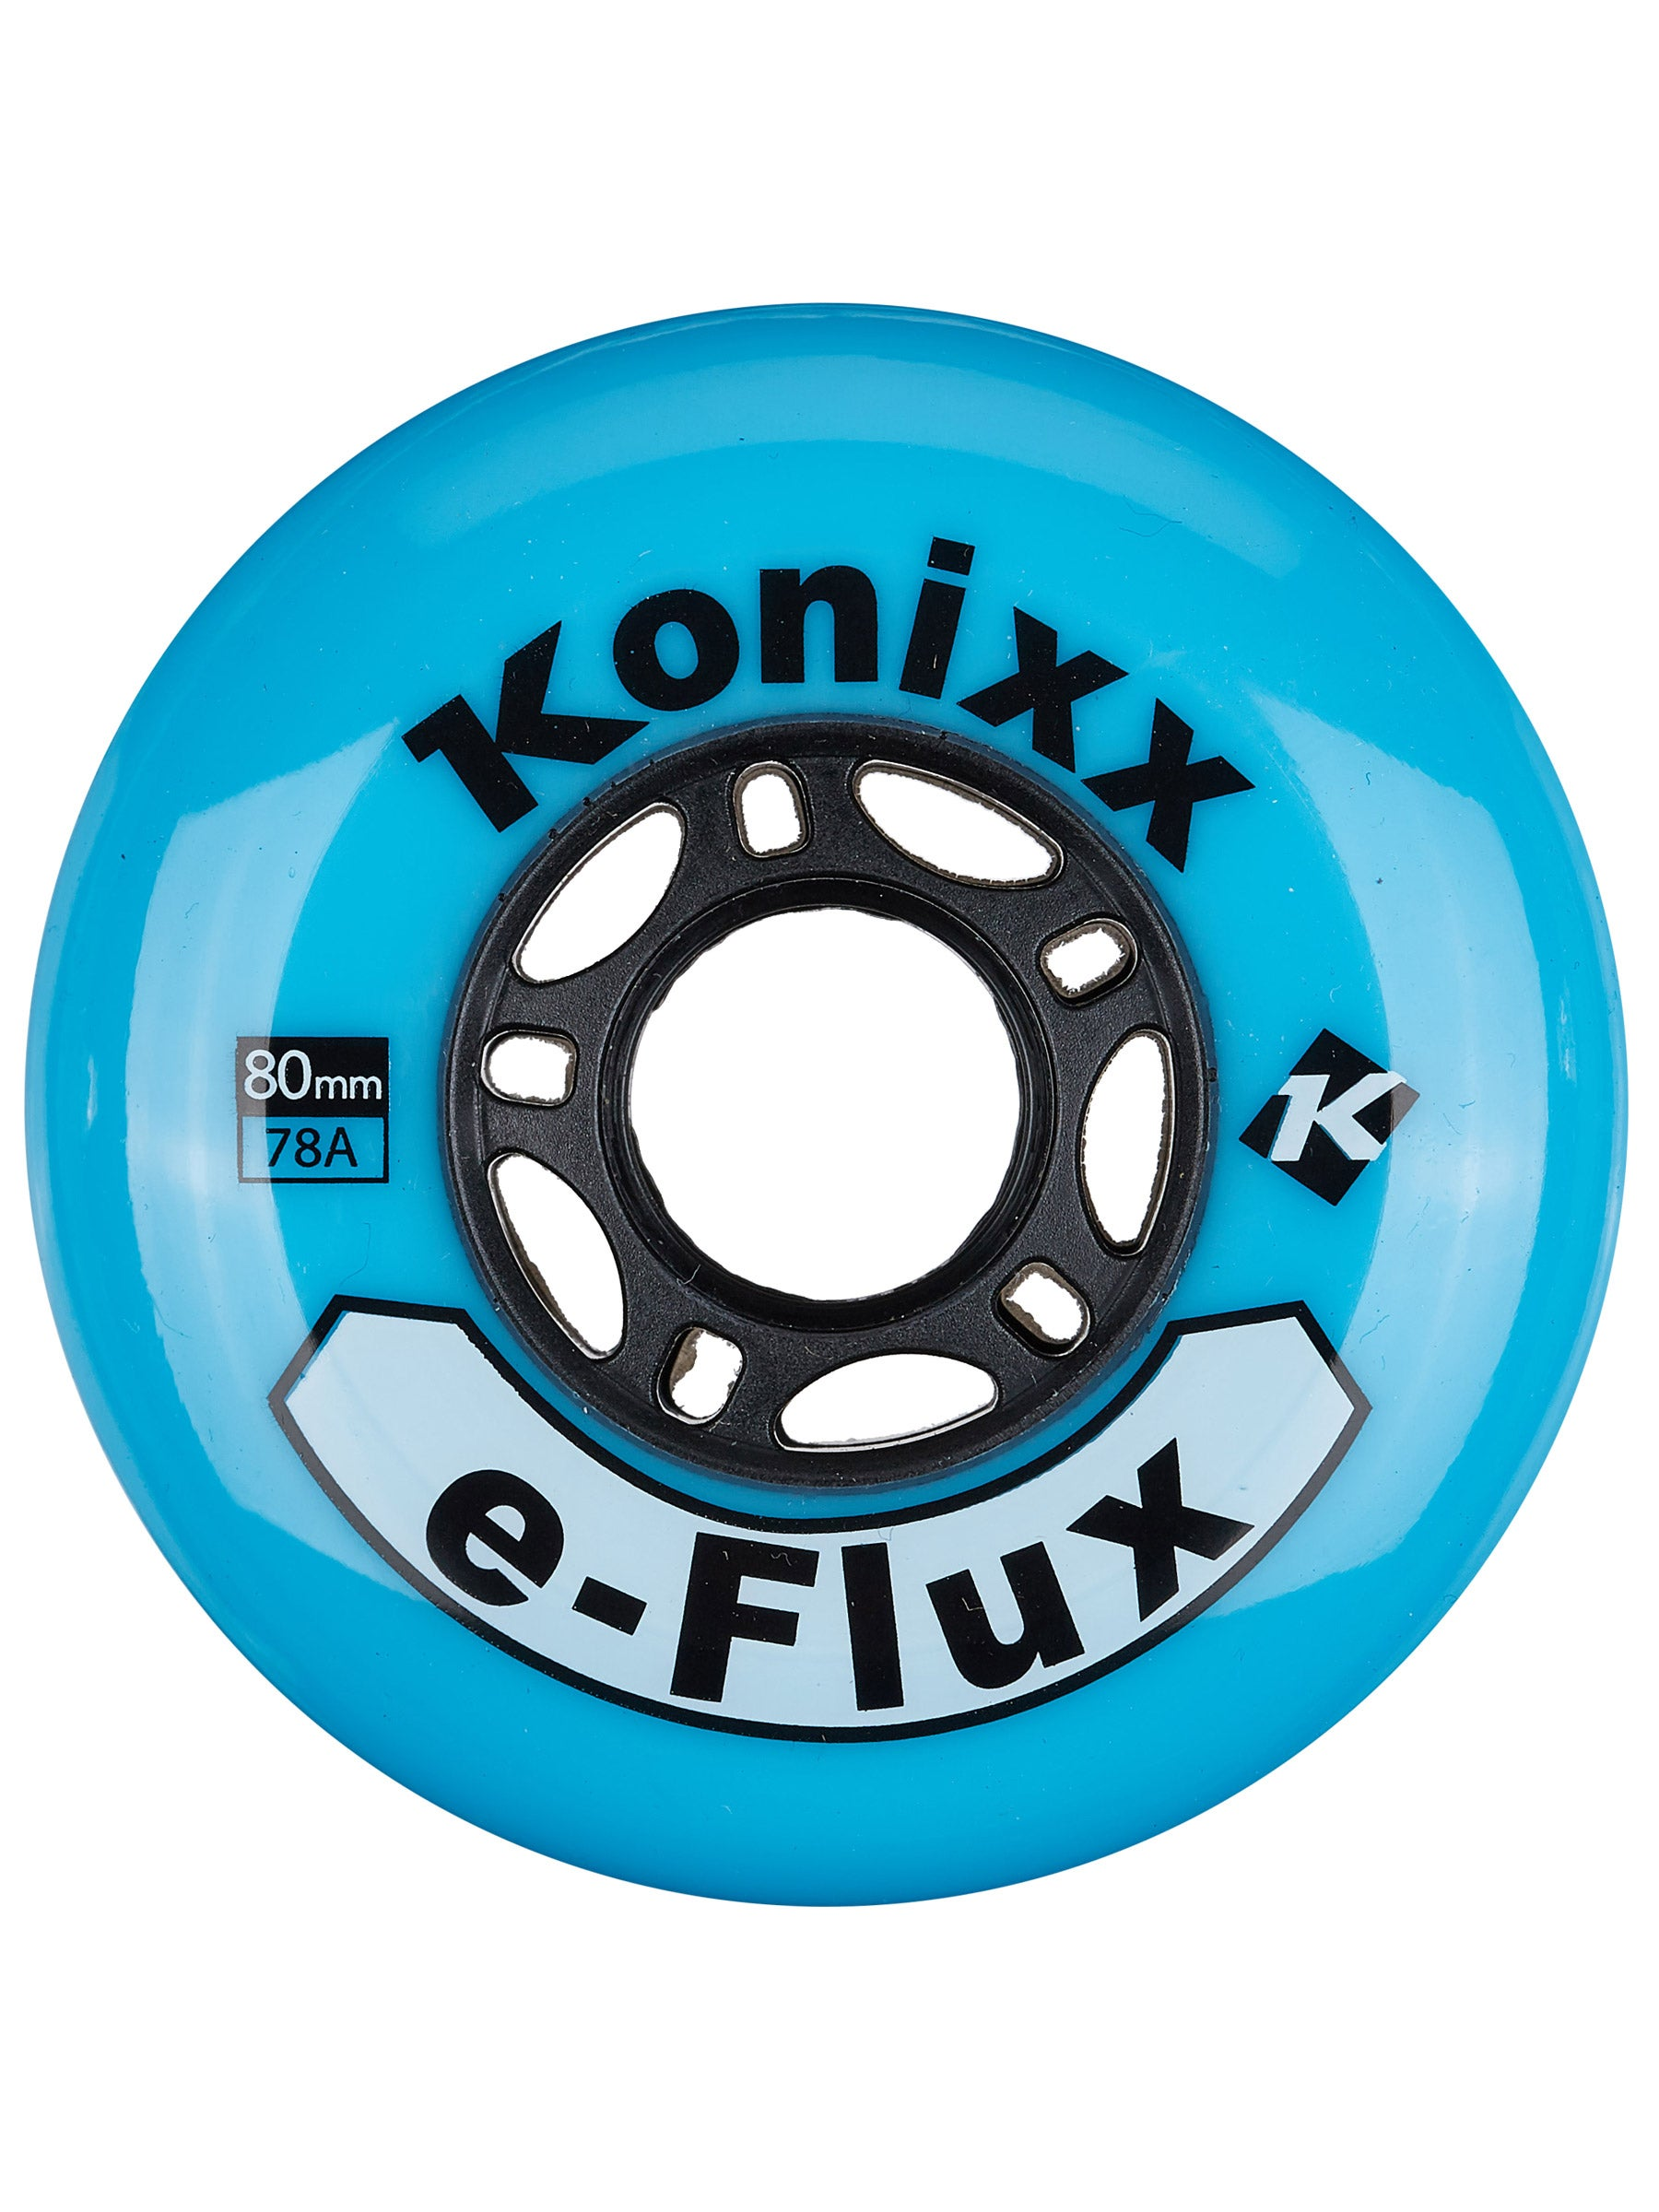 choice Inline Wheels Indoor Clear//Blue 72mm 78a Set of 4 ABEC 9